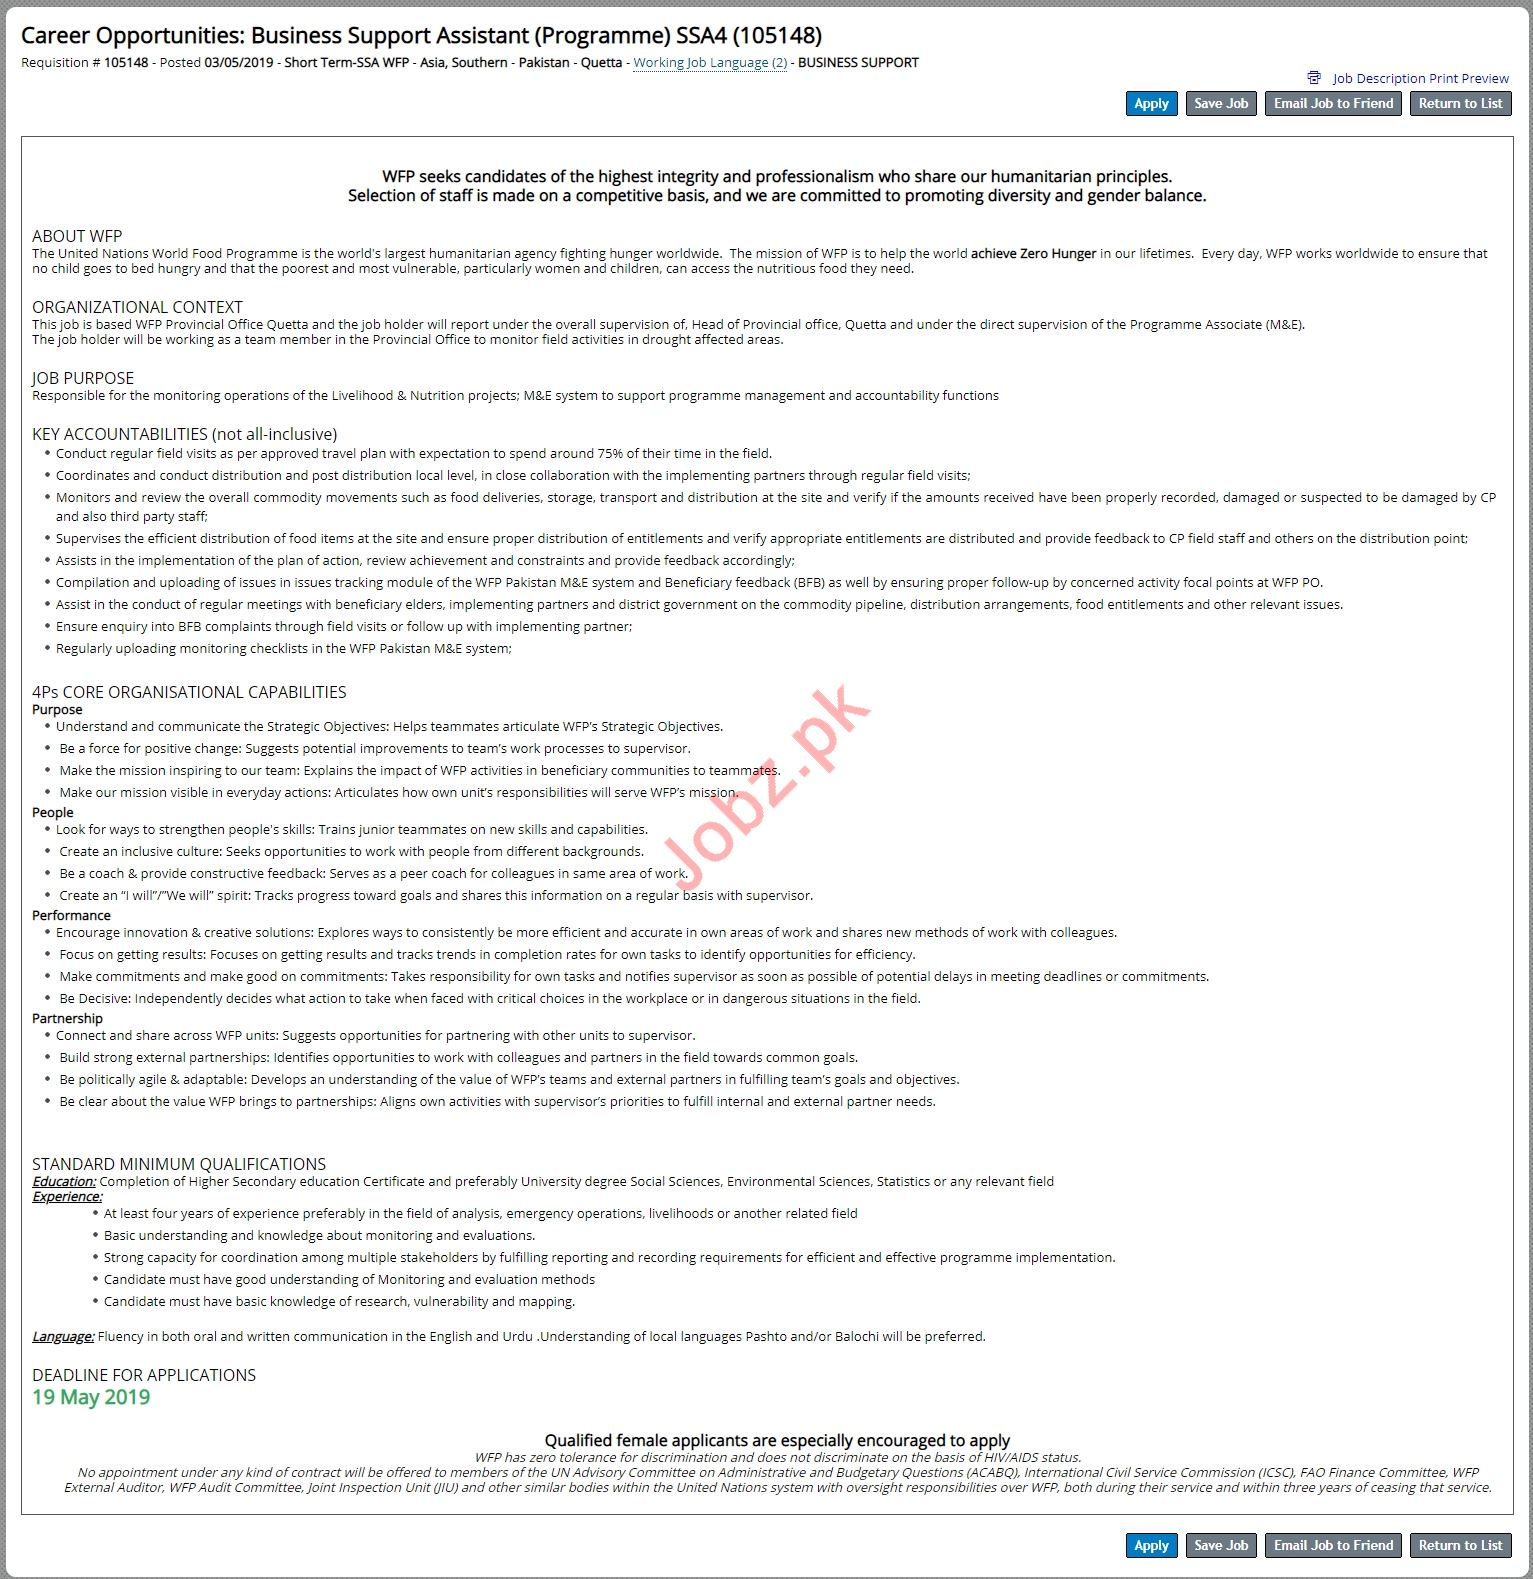 Business Support Assistant Jobs in World Food Programme